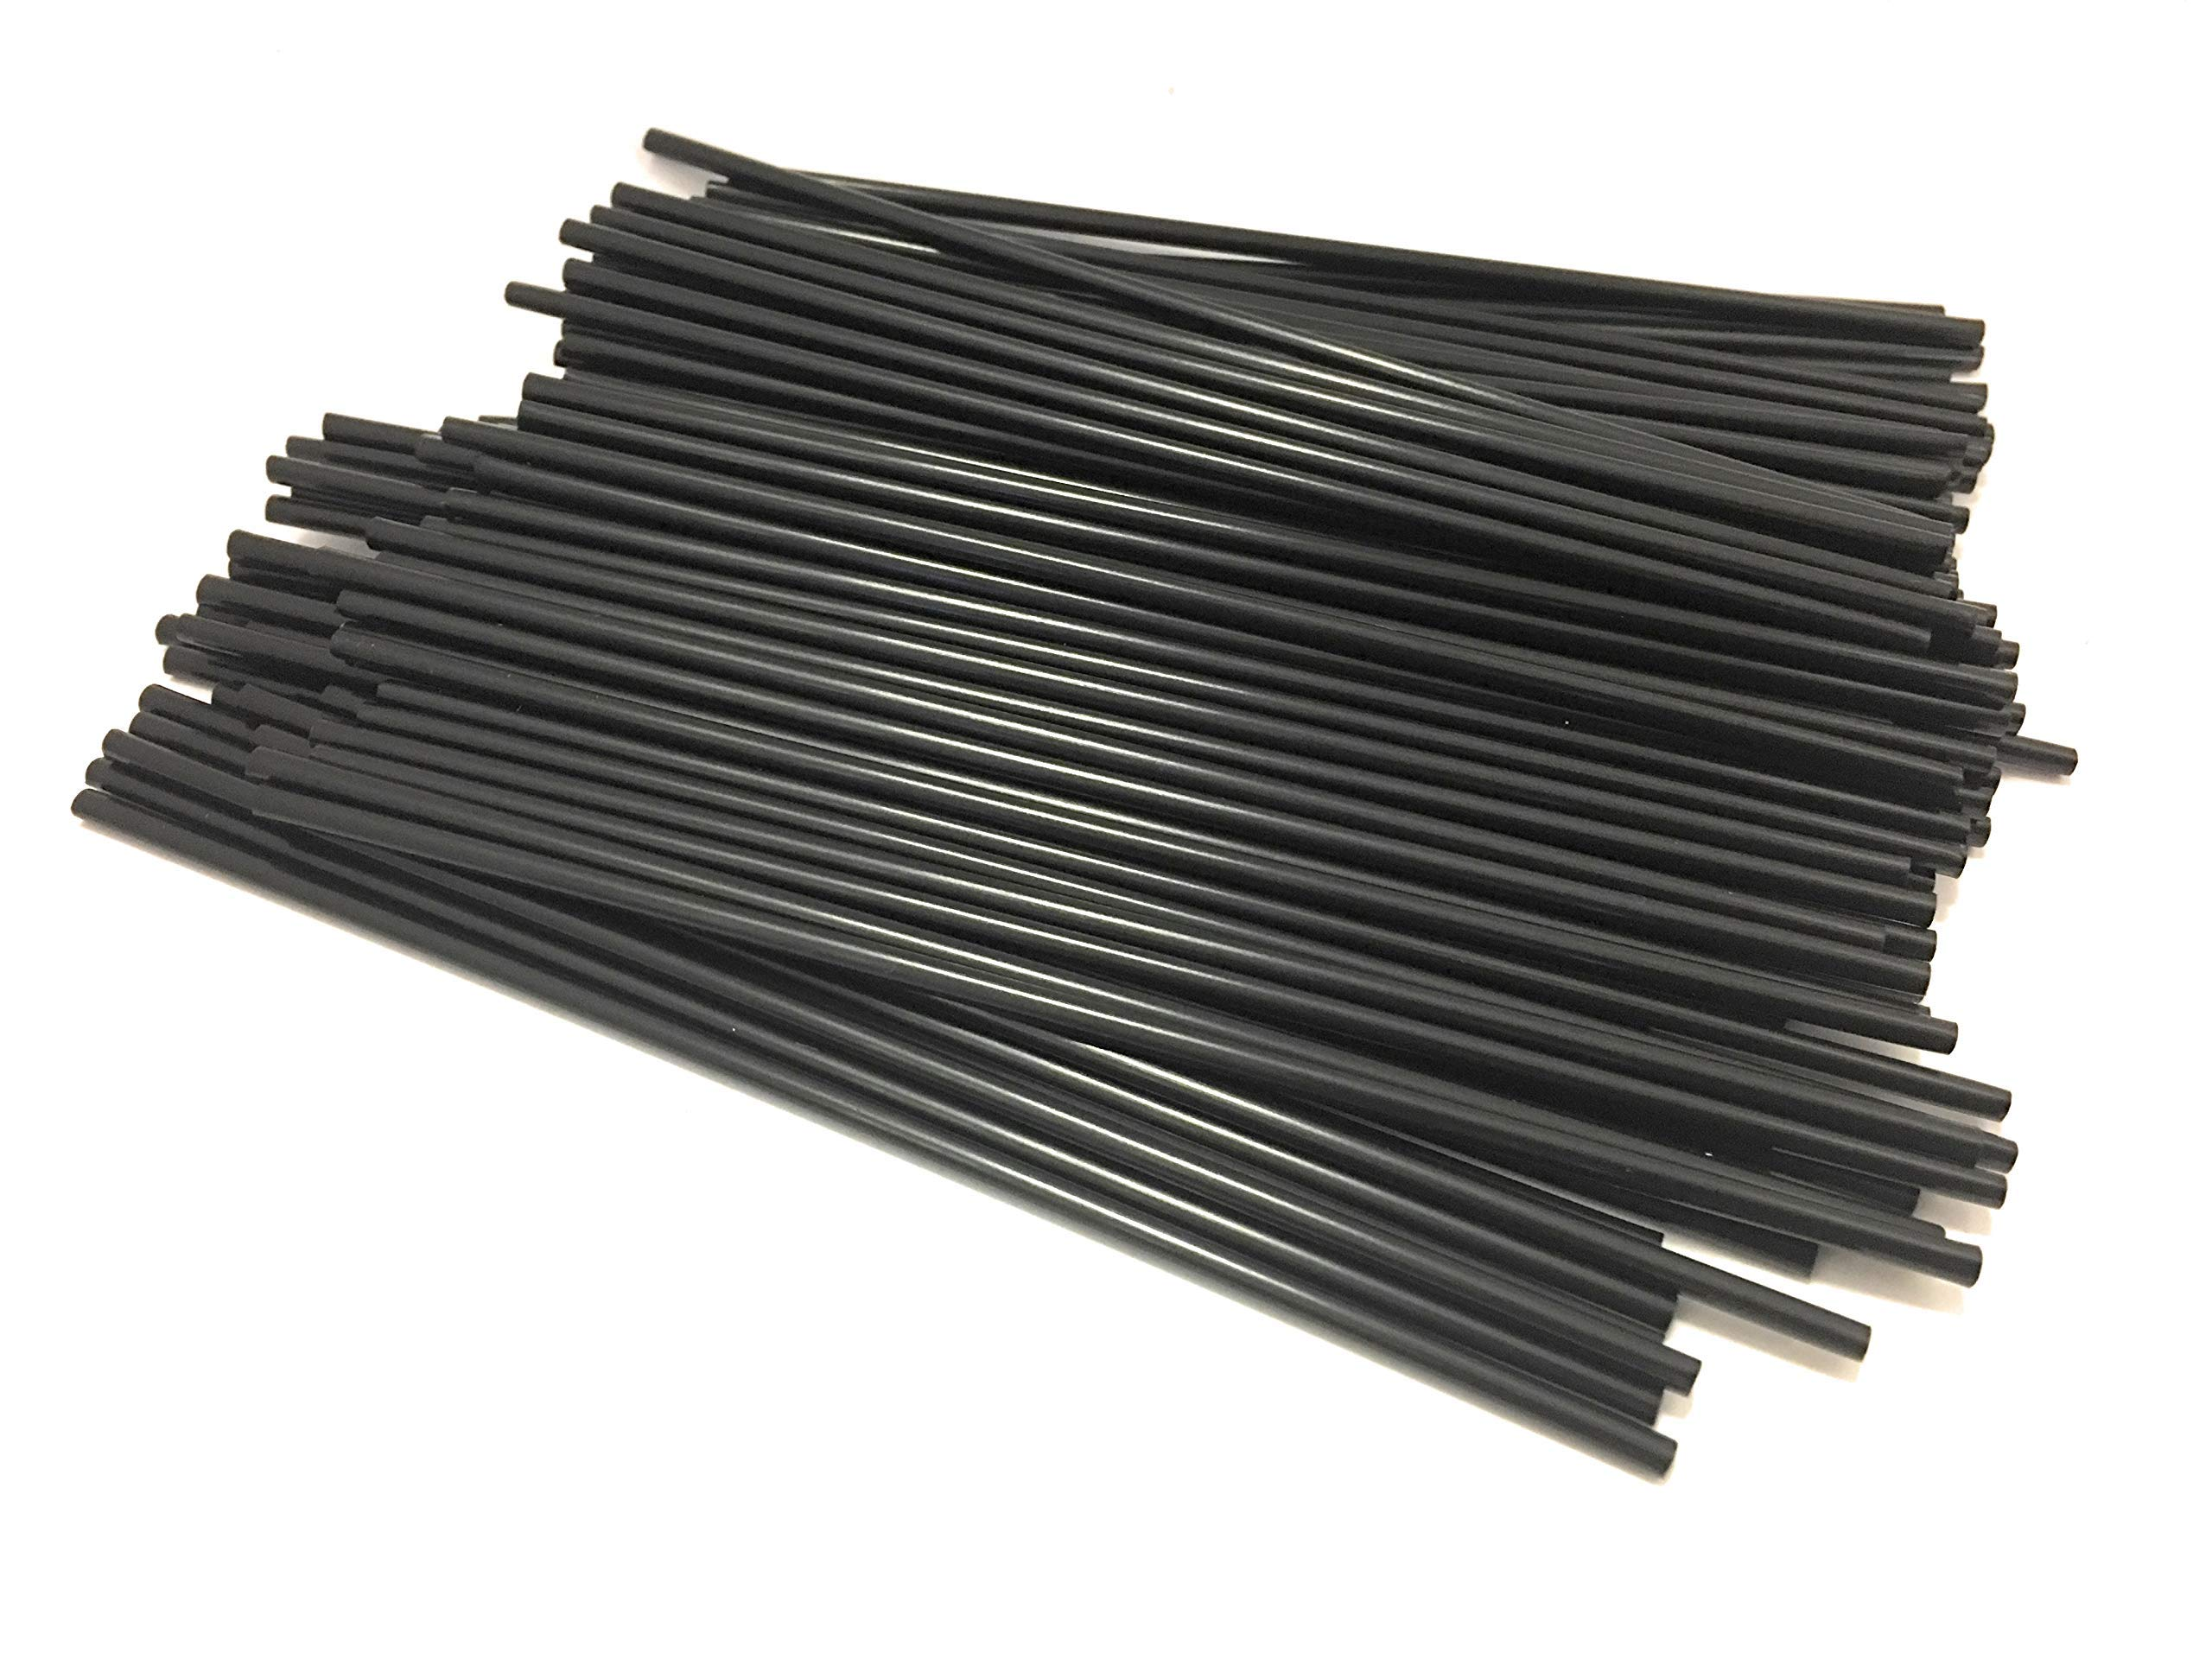 Black Disposable Beverage Stirrers Straws 5.25'' Case of 10,000